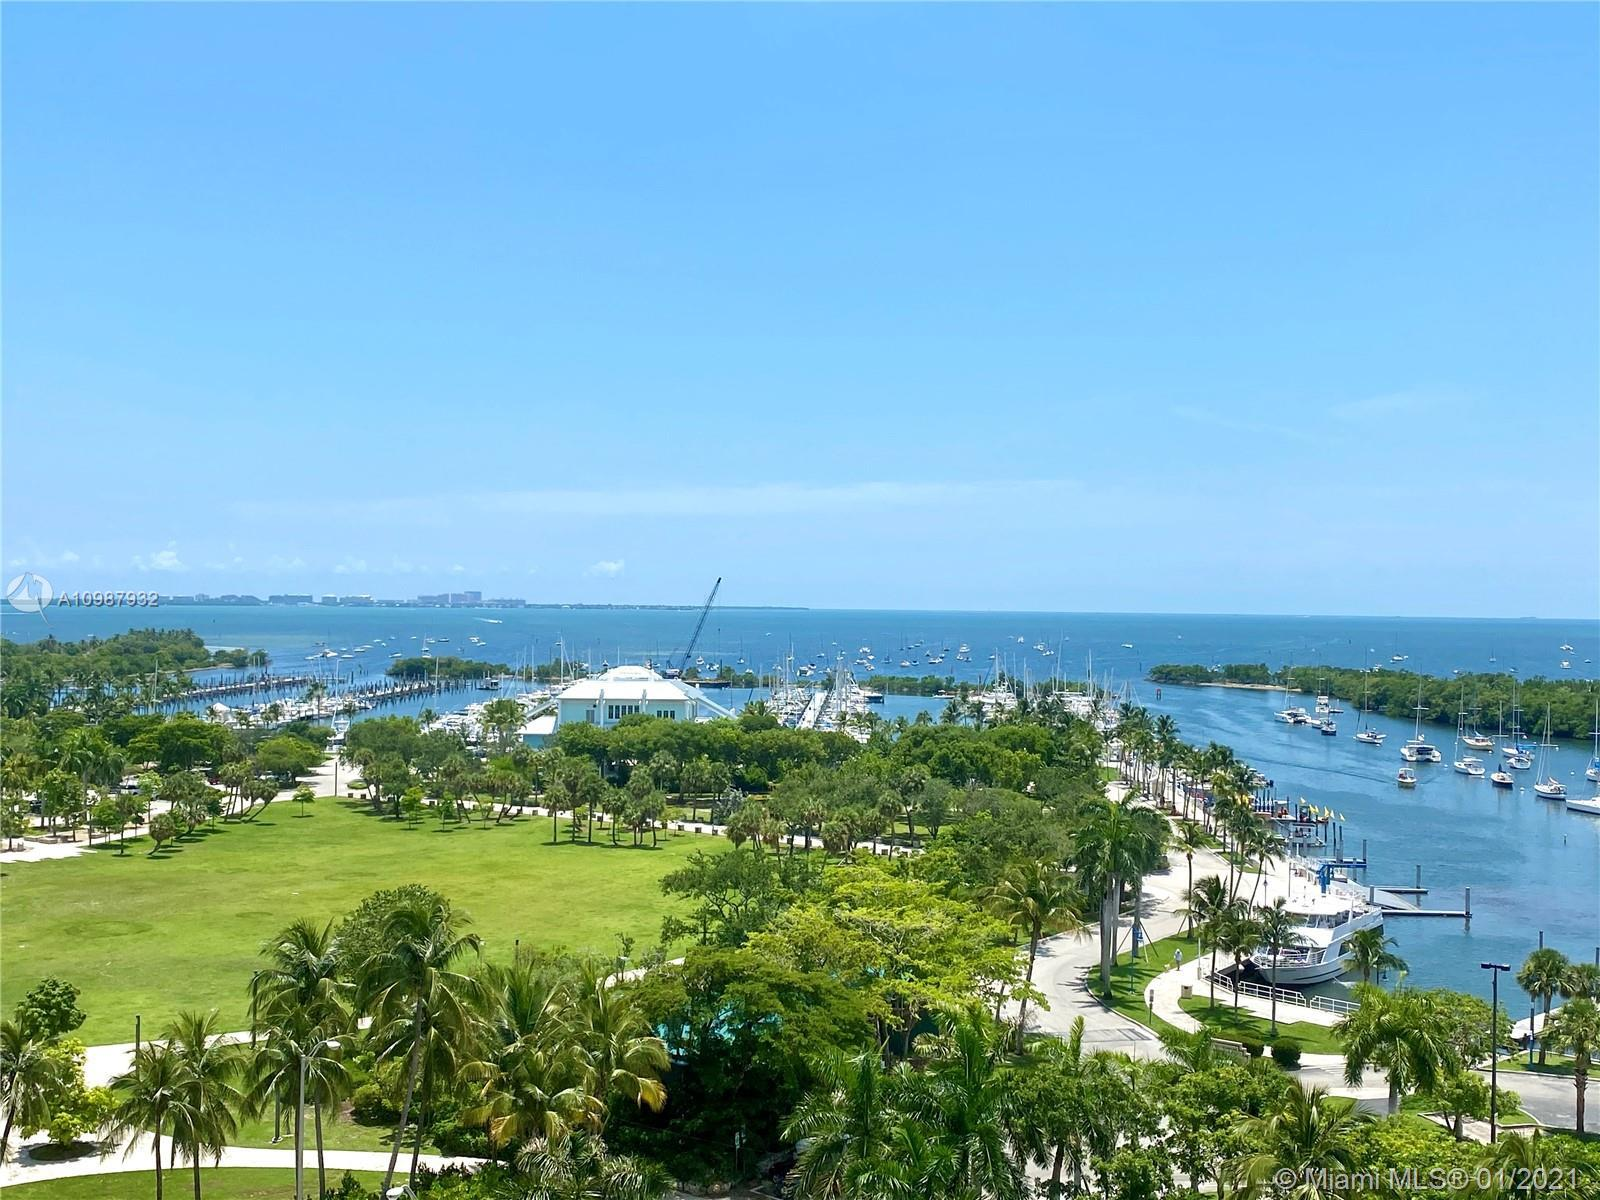 Overlooking the prized Biscayne Bay, this 3 bed condo welcomes you to the newly delivered One Park G